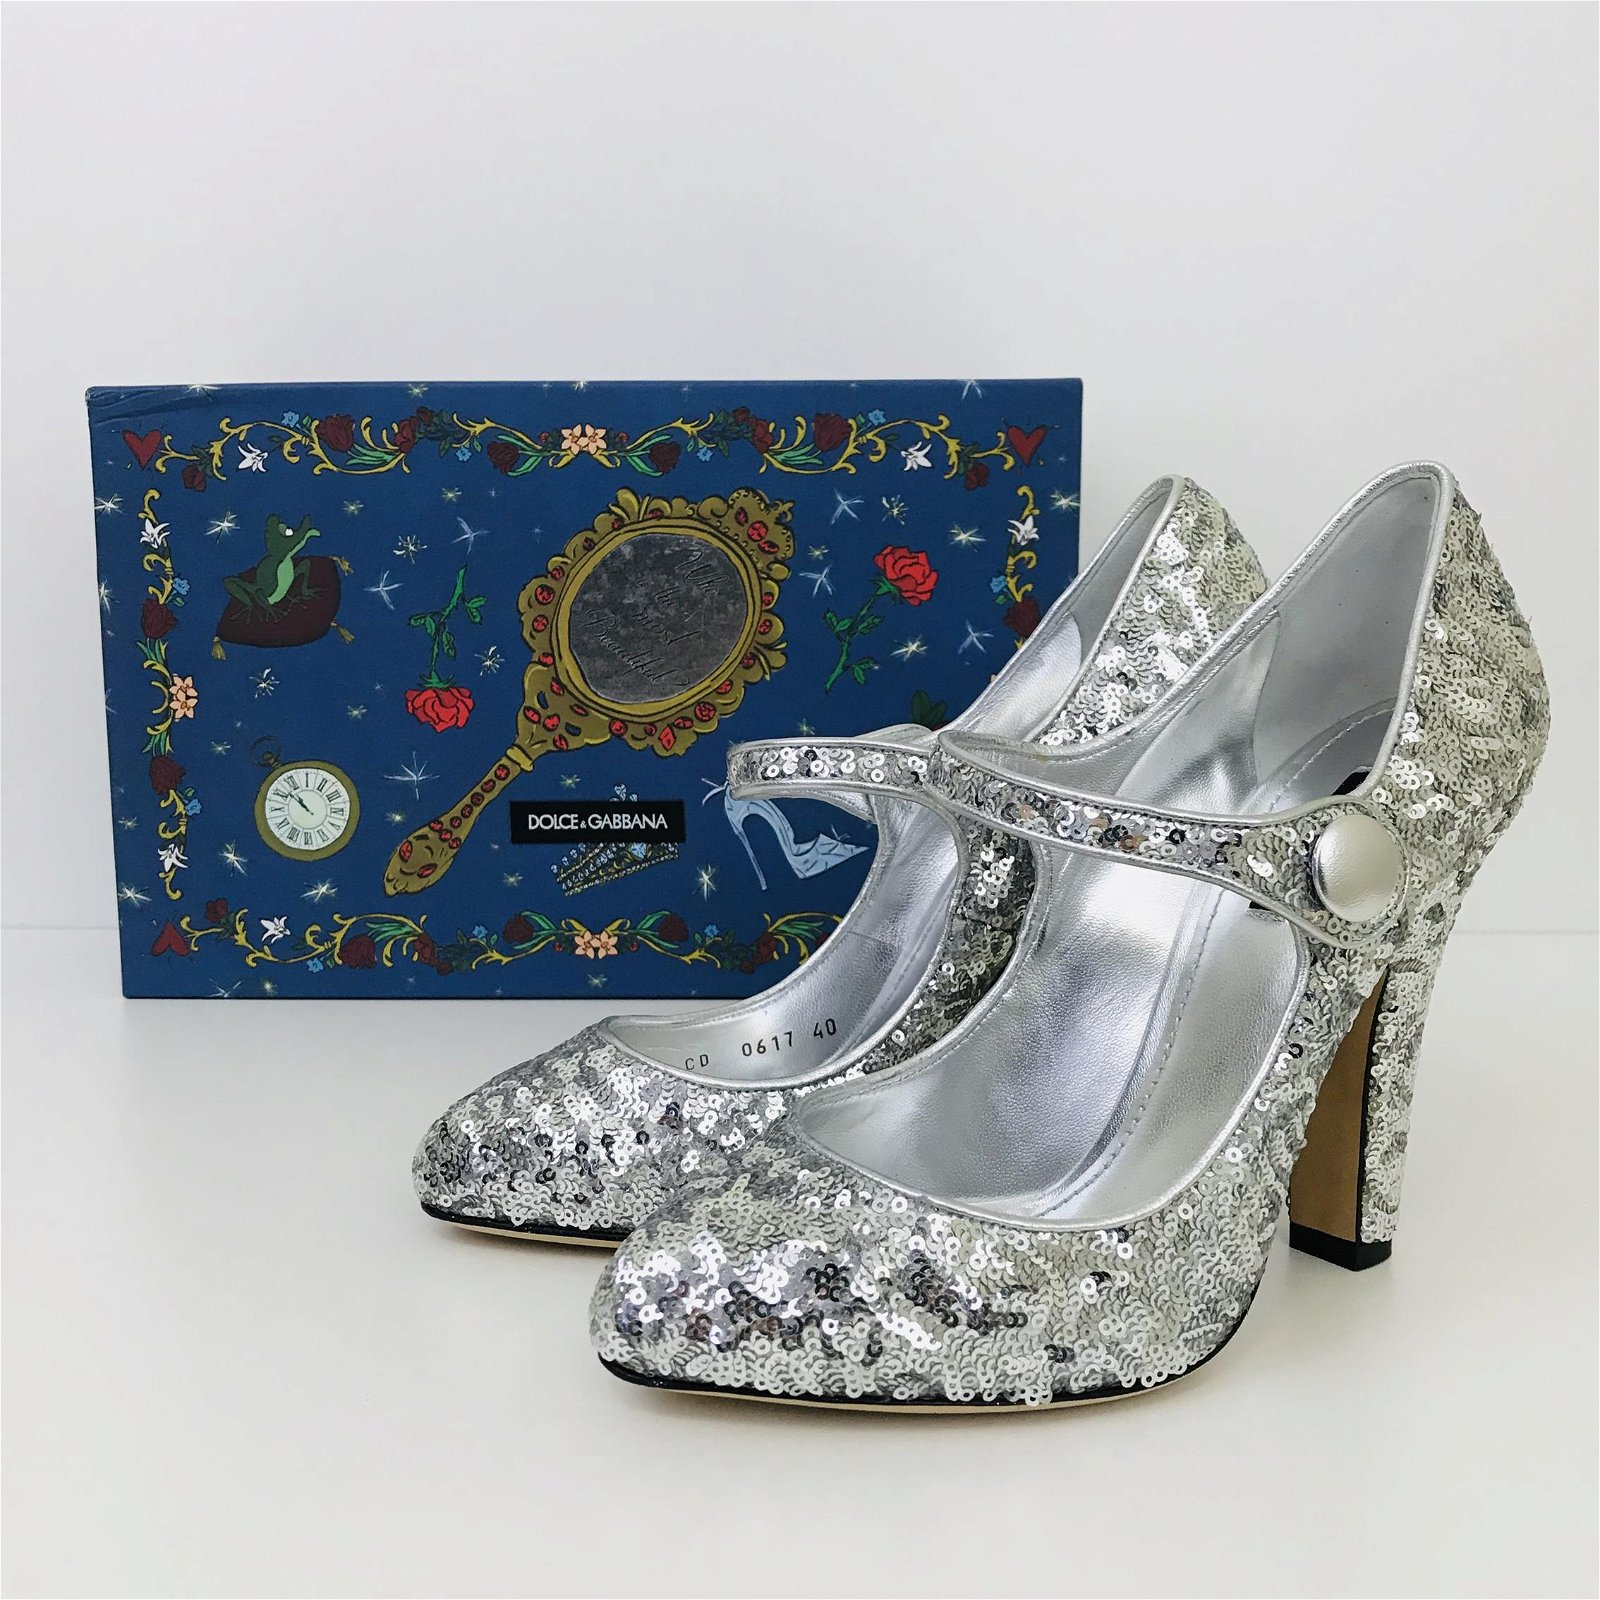 Ladies New Authentic Dolce & Gabbana High Heel Shoes